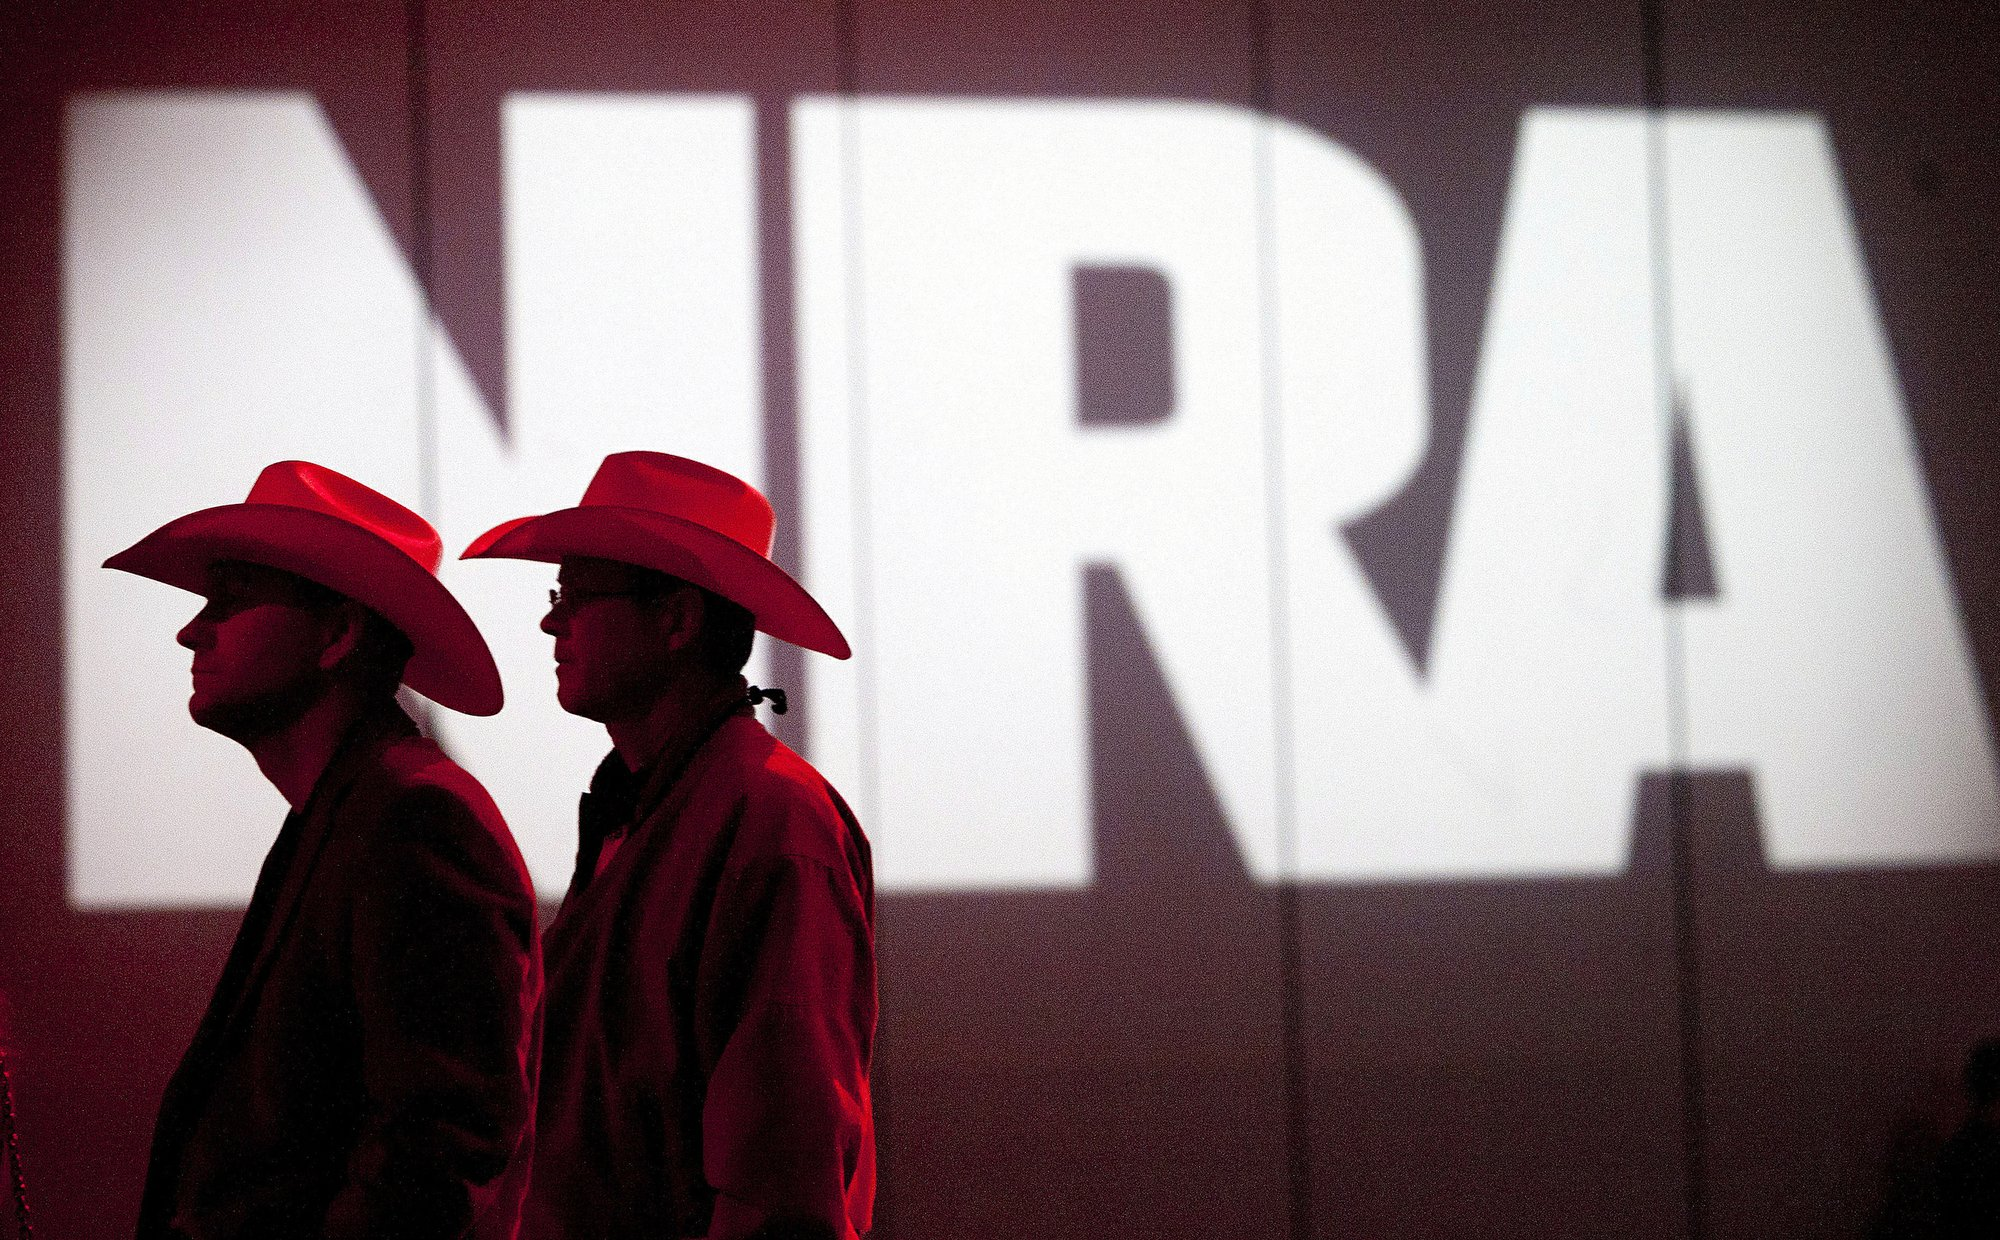 NRA sues Los Angeles over disclosure law for contractors